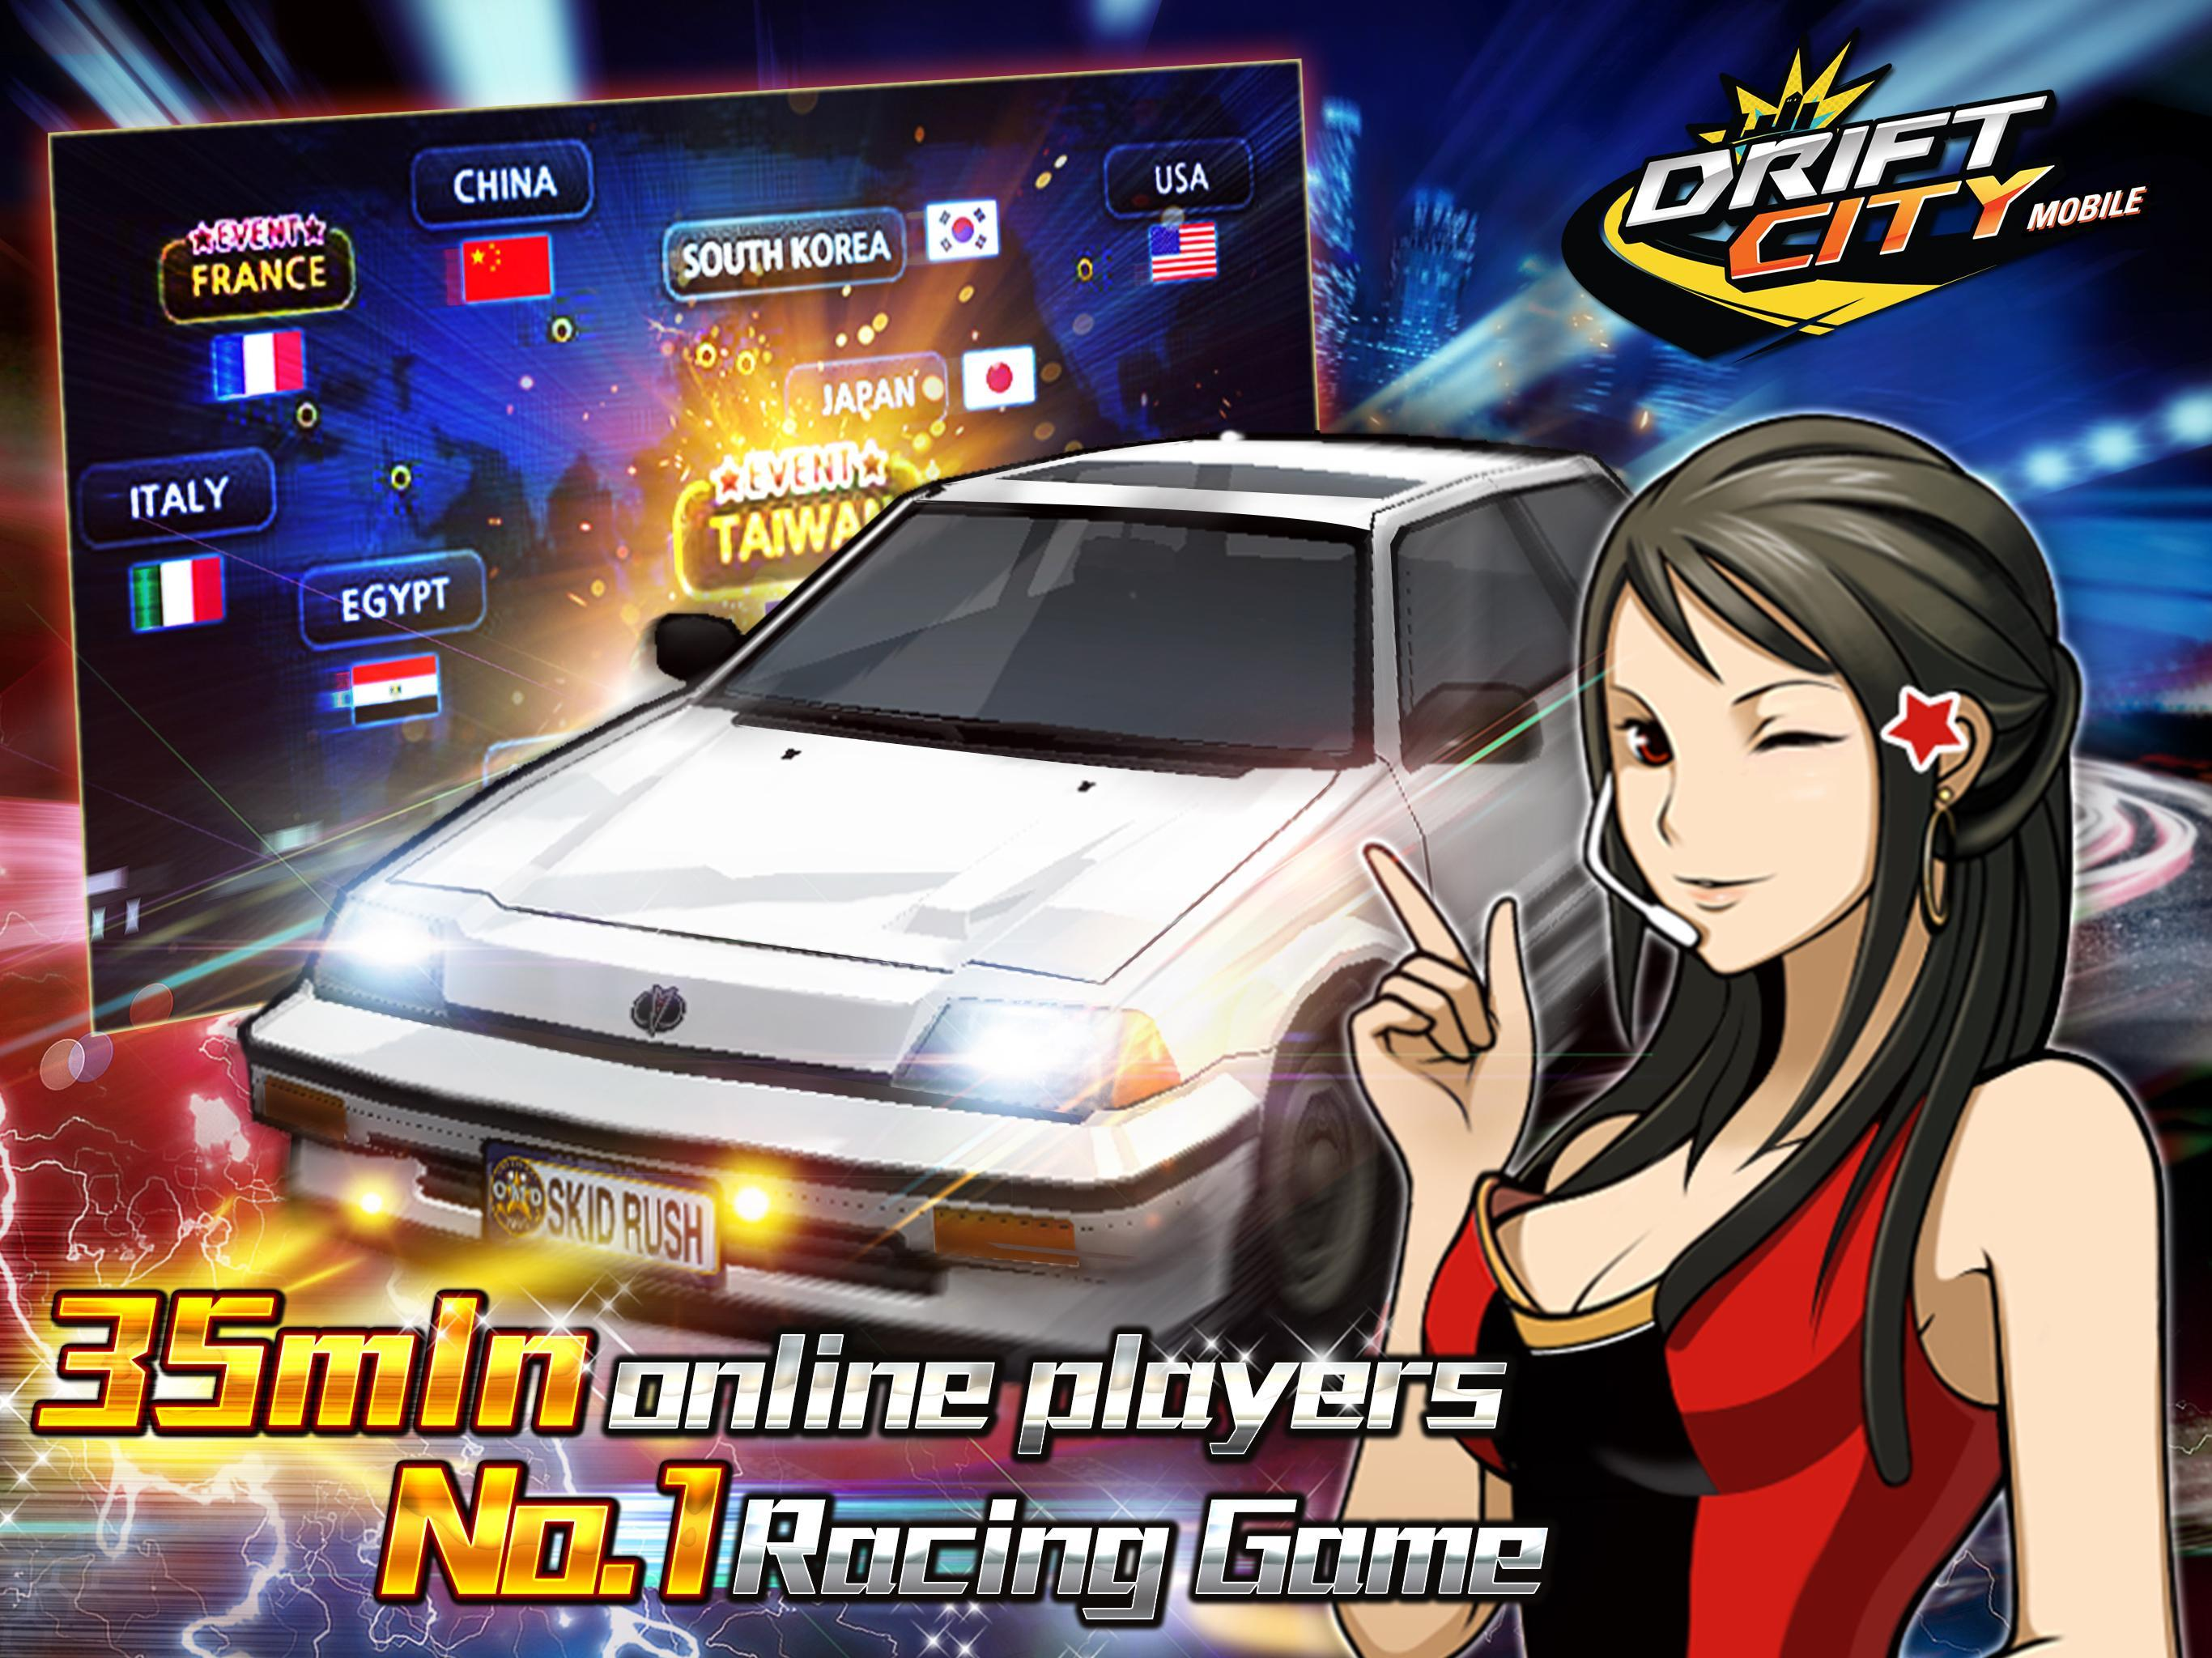 Drift City for Android - APK Download